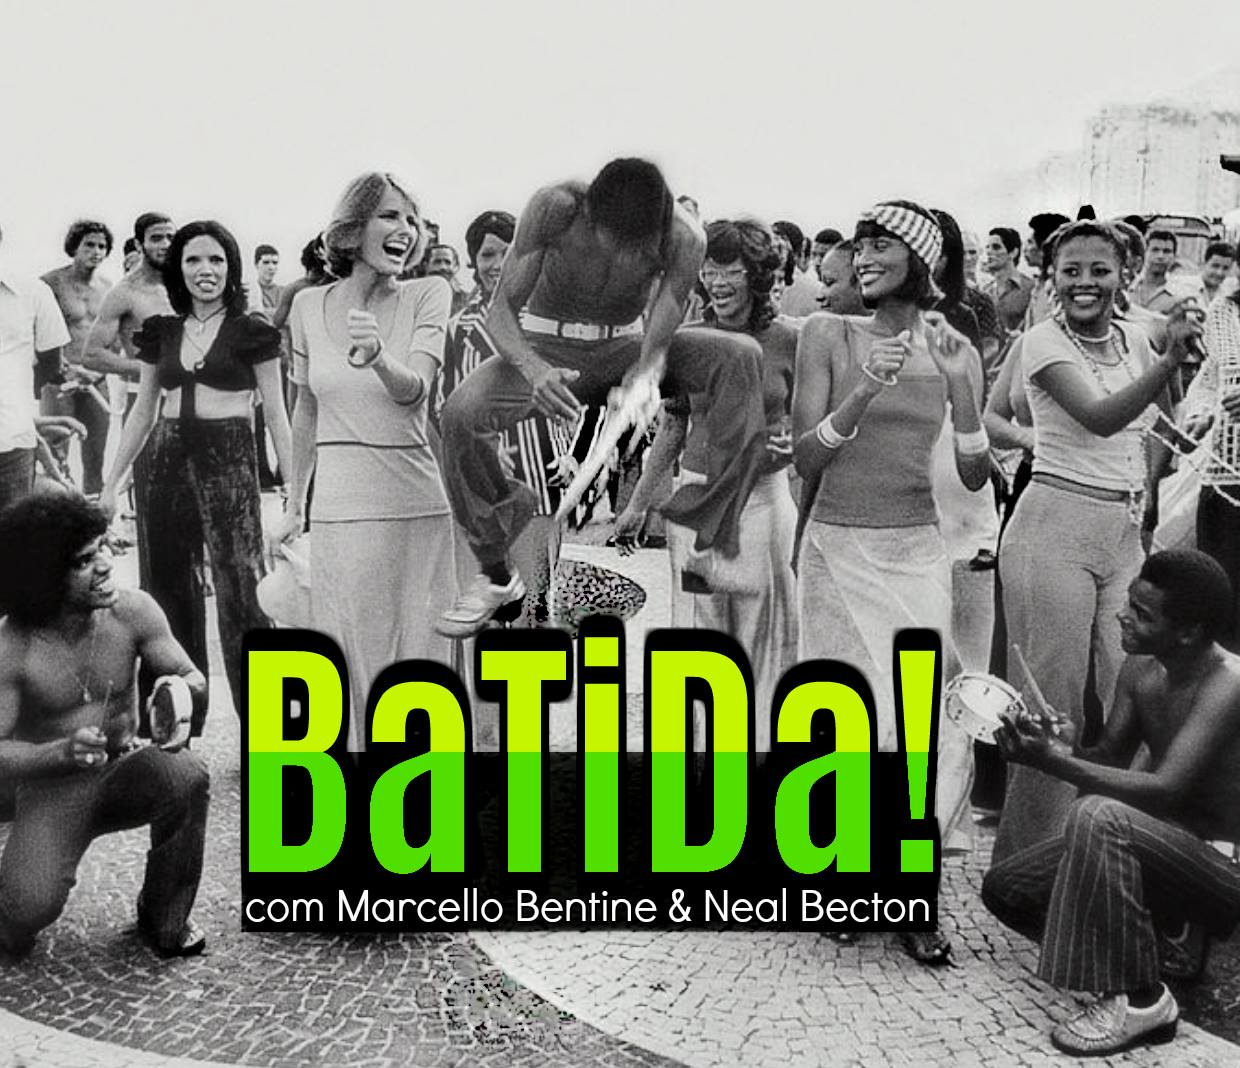 BaTiDa! Brazilian Vinyl Dance Party